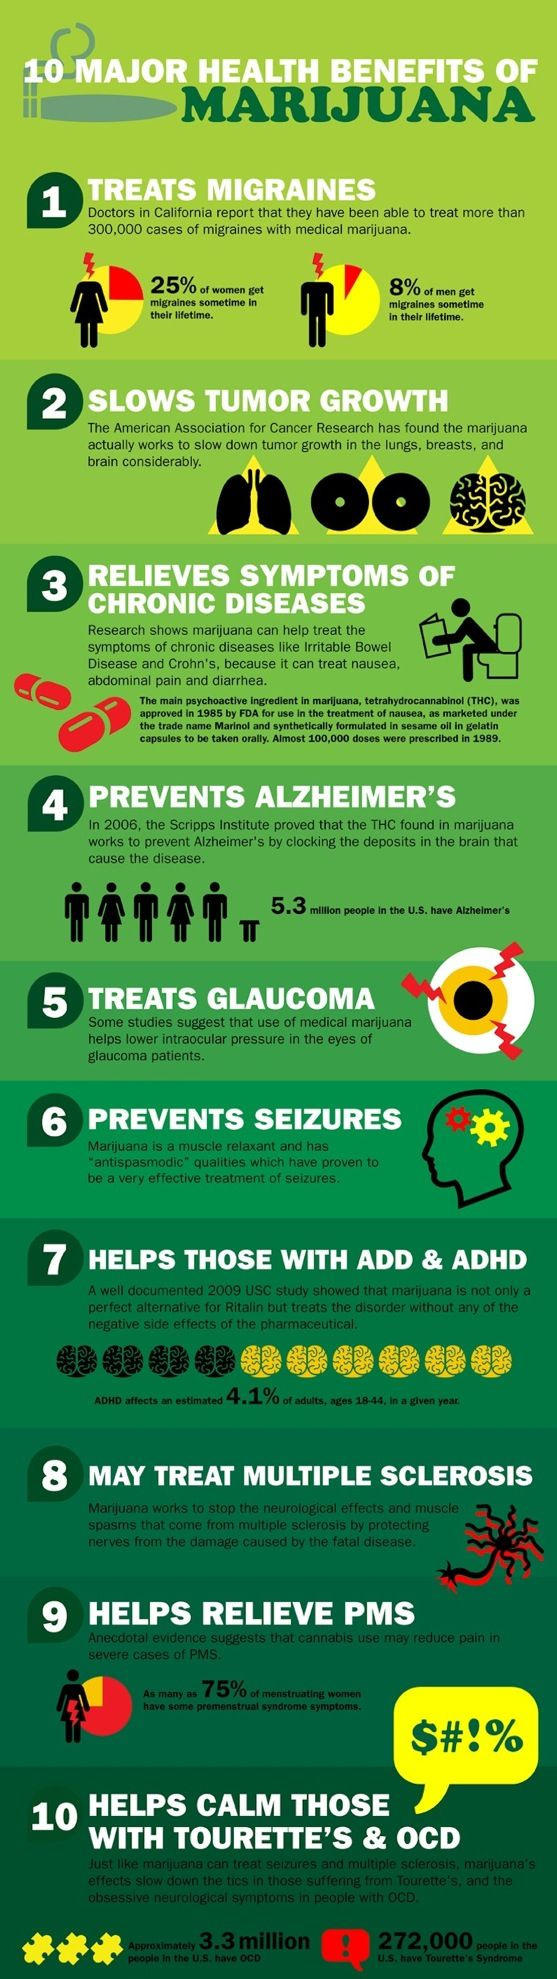 Benefits of marijuana. Just saying, if you are into that kind of thing it looks like you could be benefitting in more ways than your silly mind may think(: <3